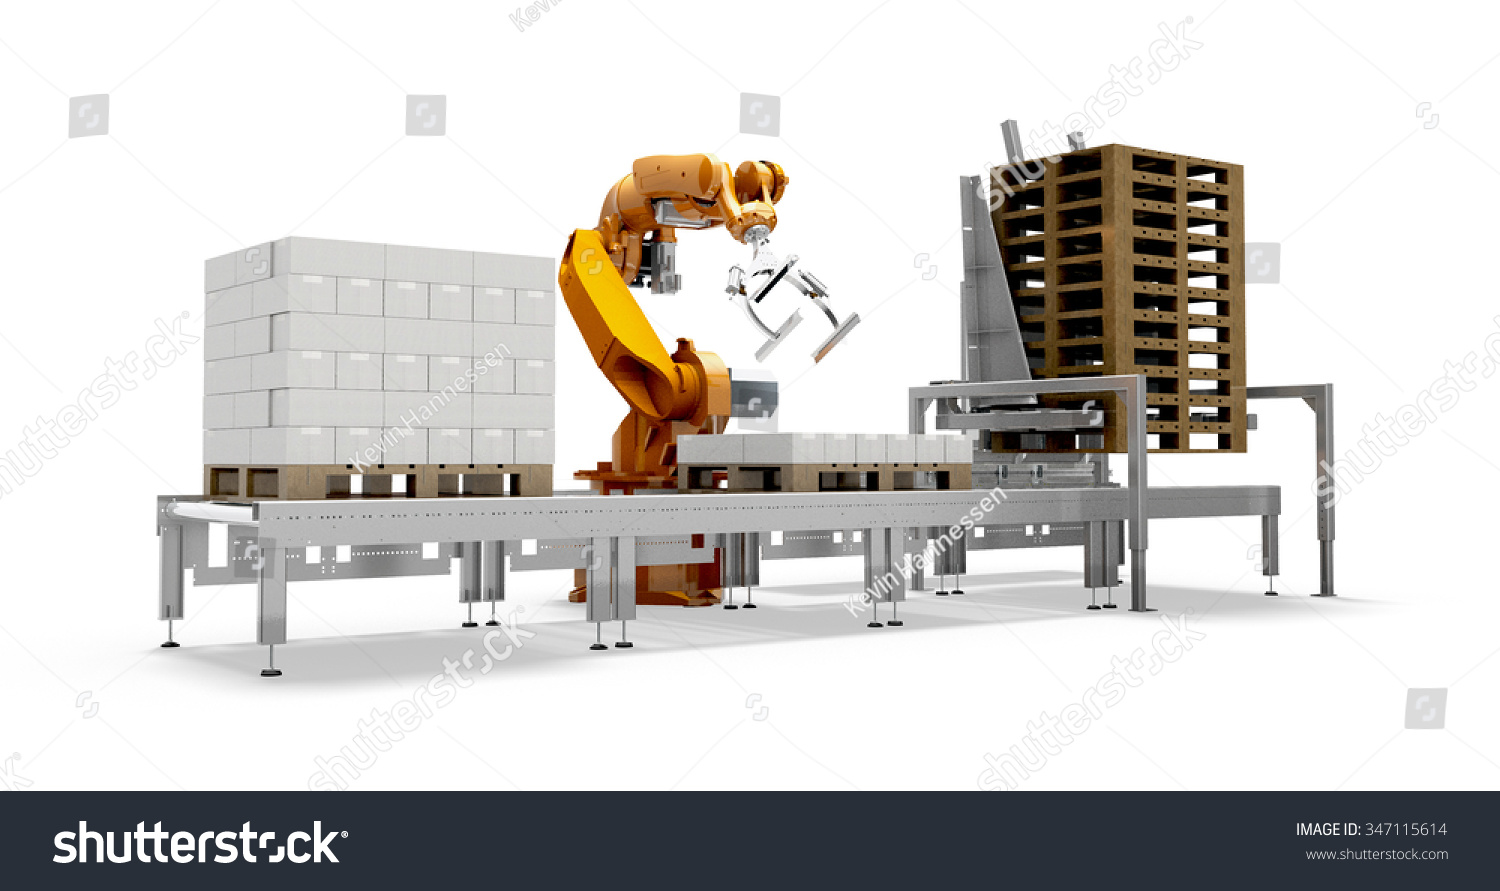 Arm robot palletizer